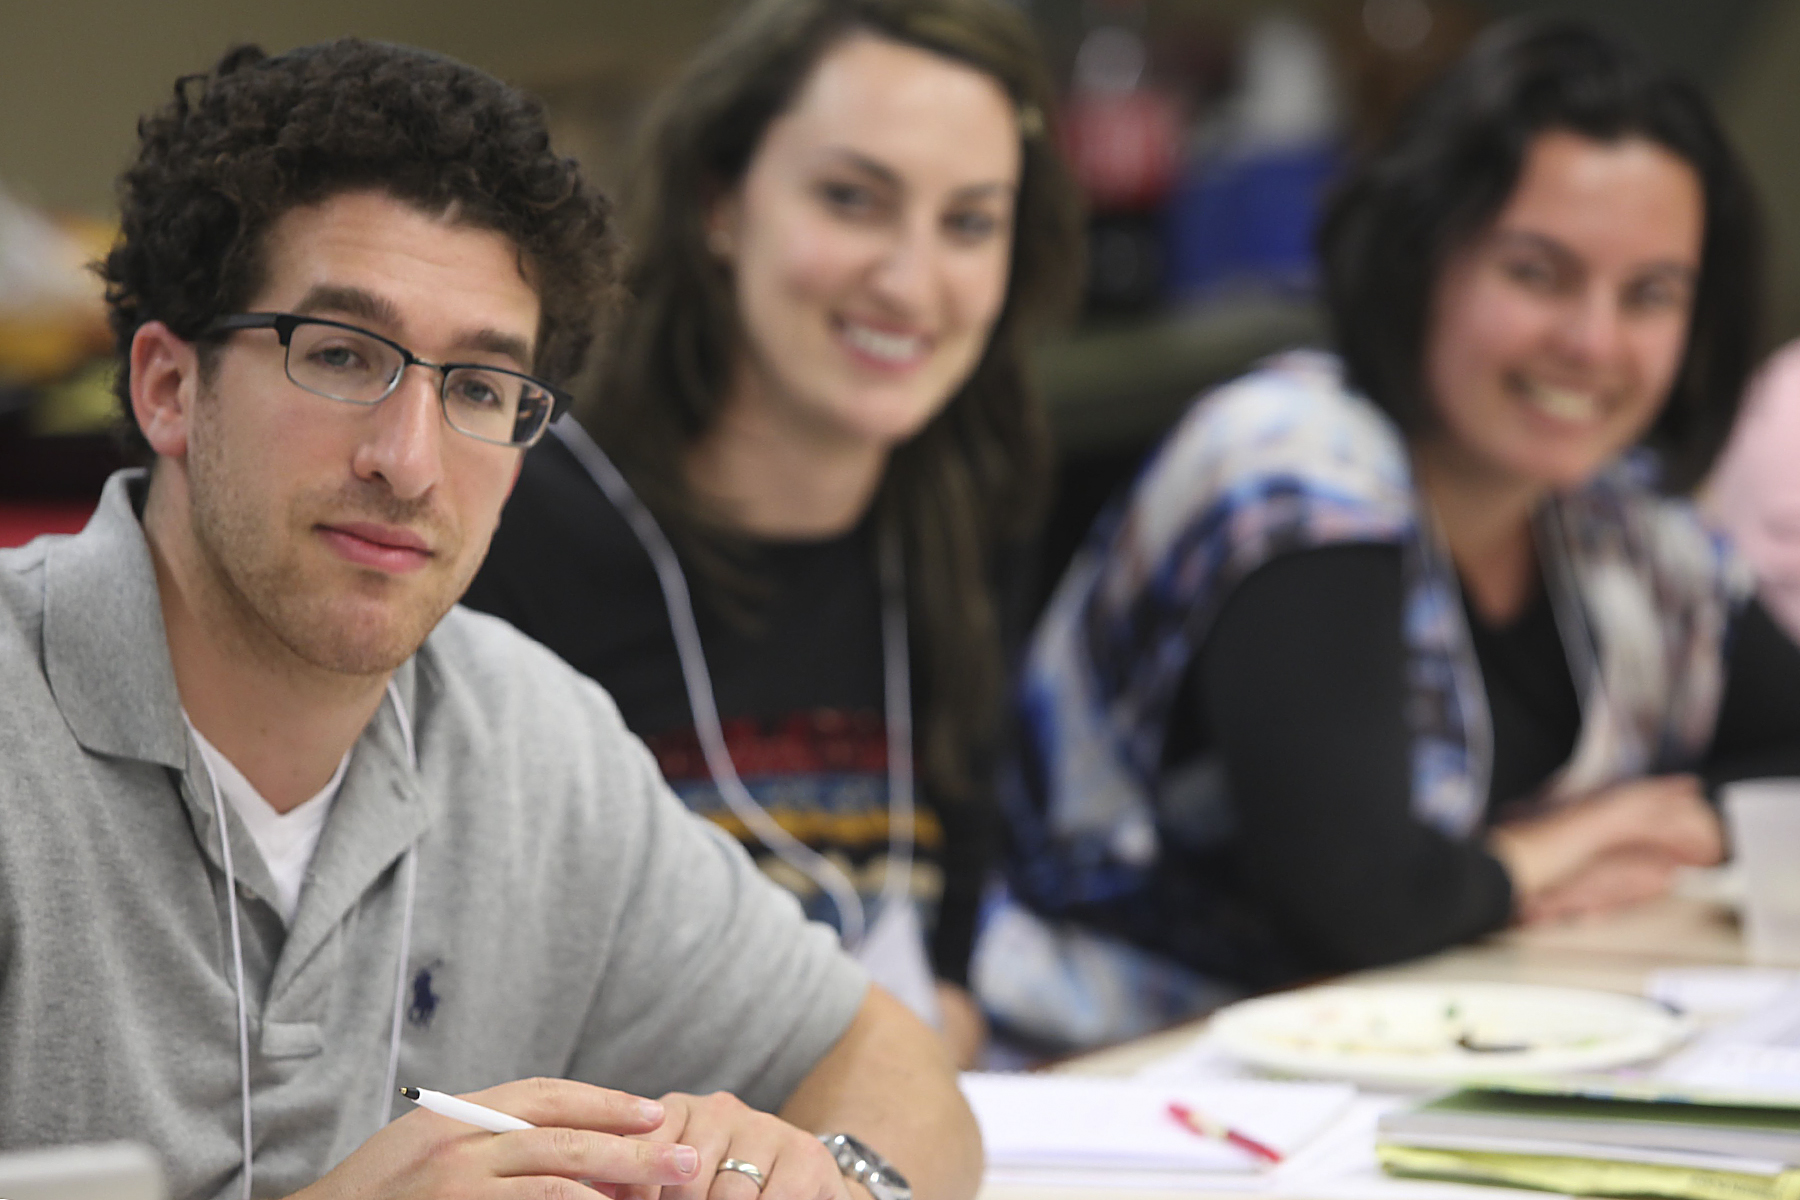 Raffi Rosenzweig, a Legacy Heritage Fellow, has taught at Dallas's Yavneh Academy for the past two years.